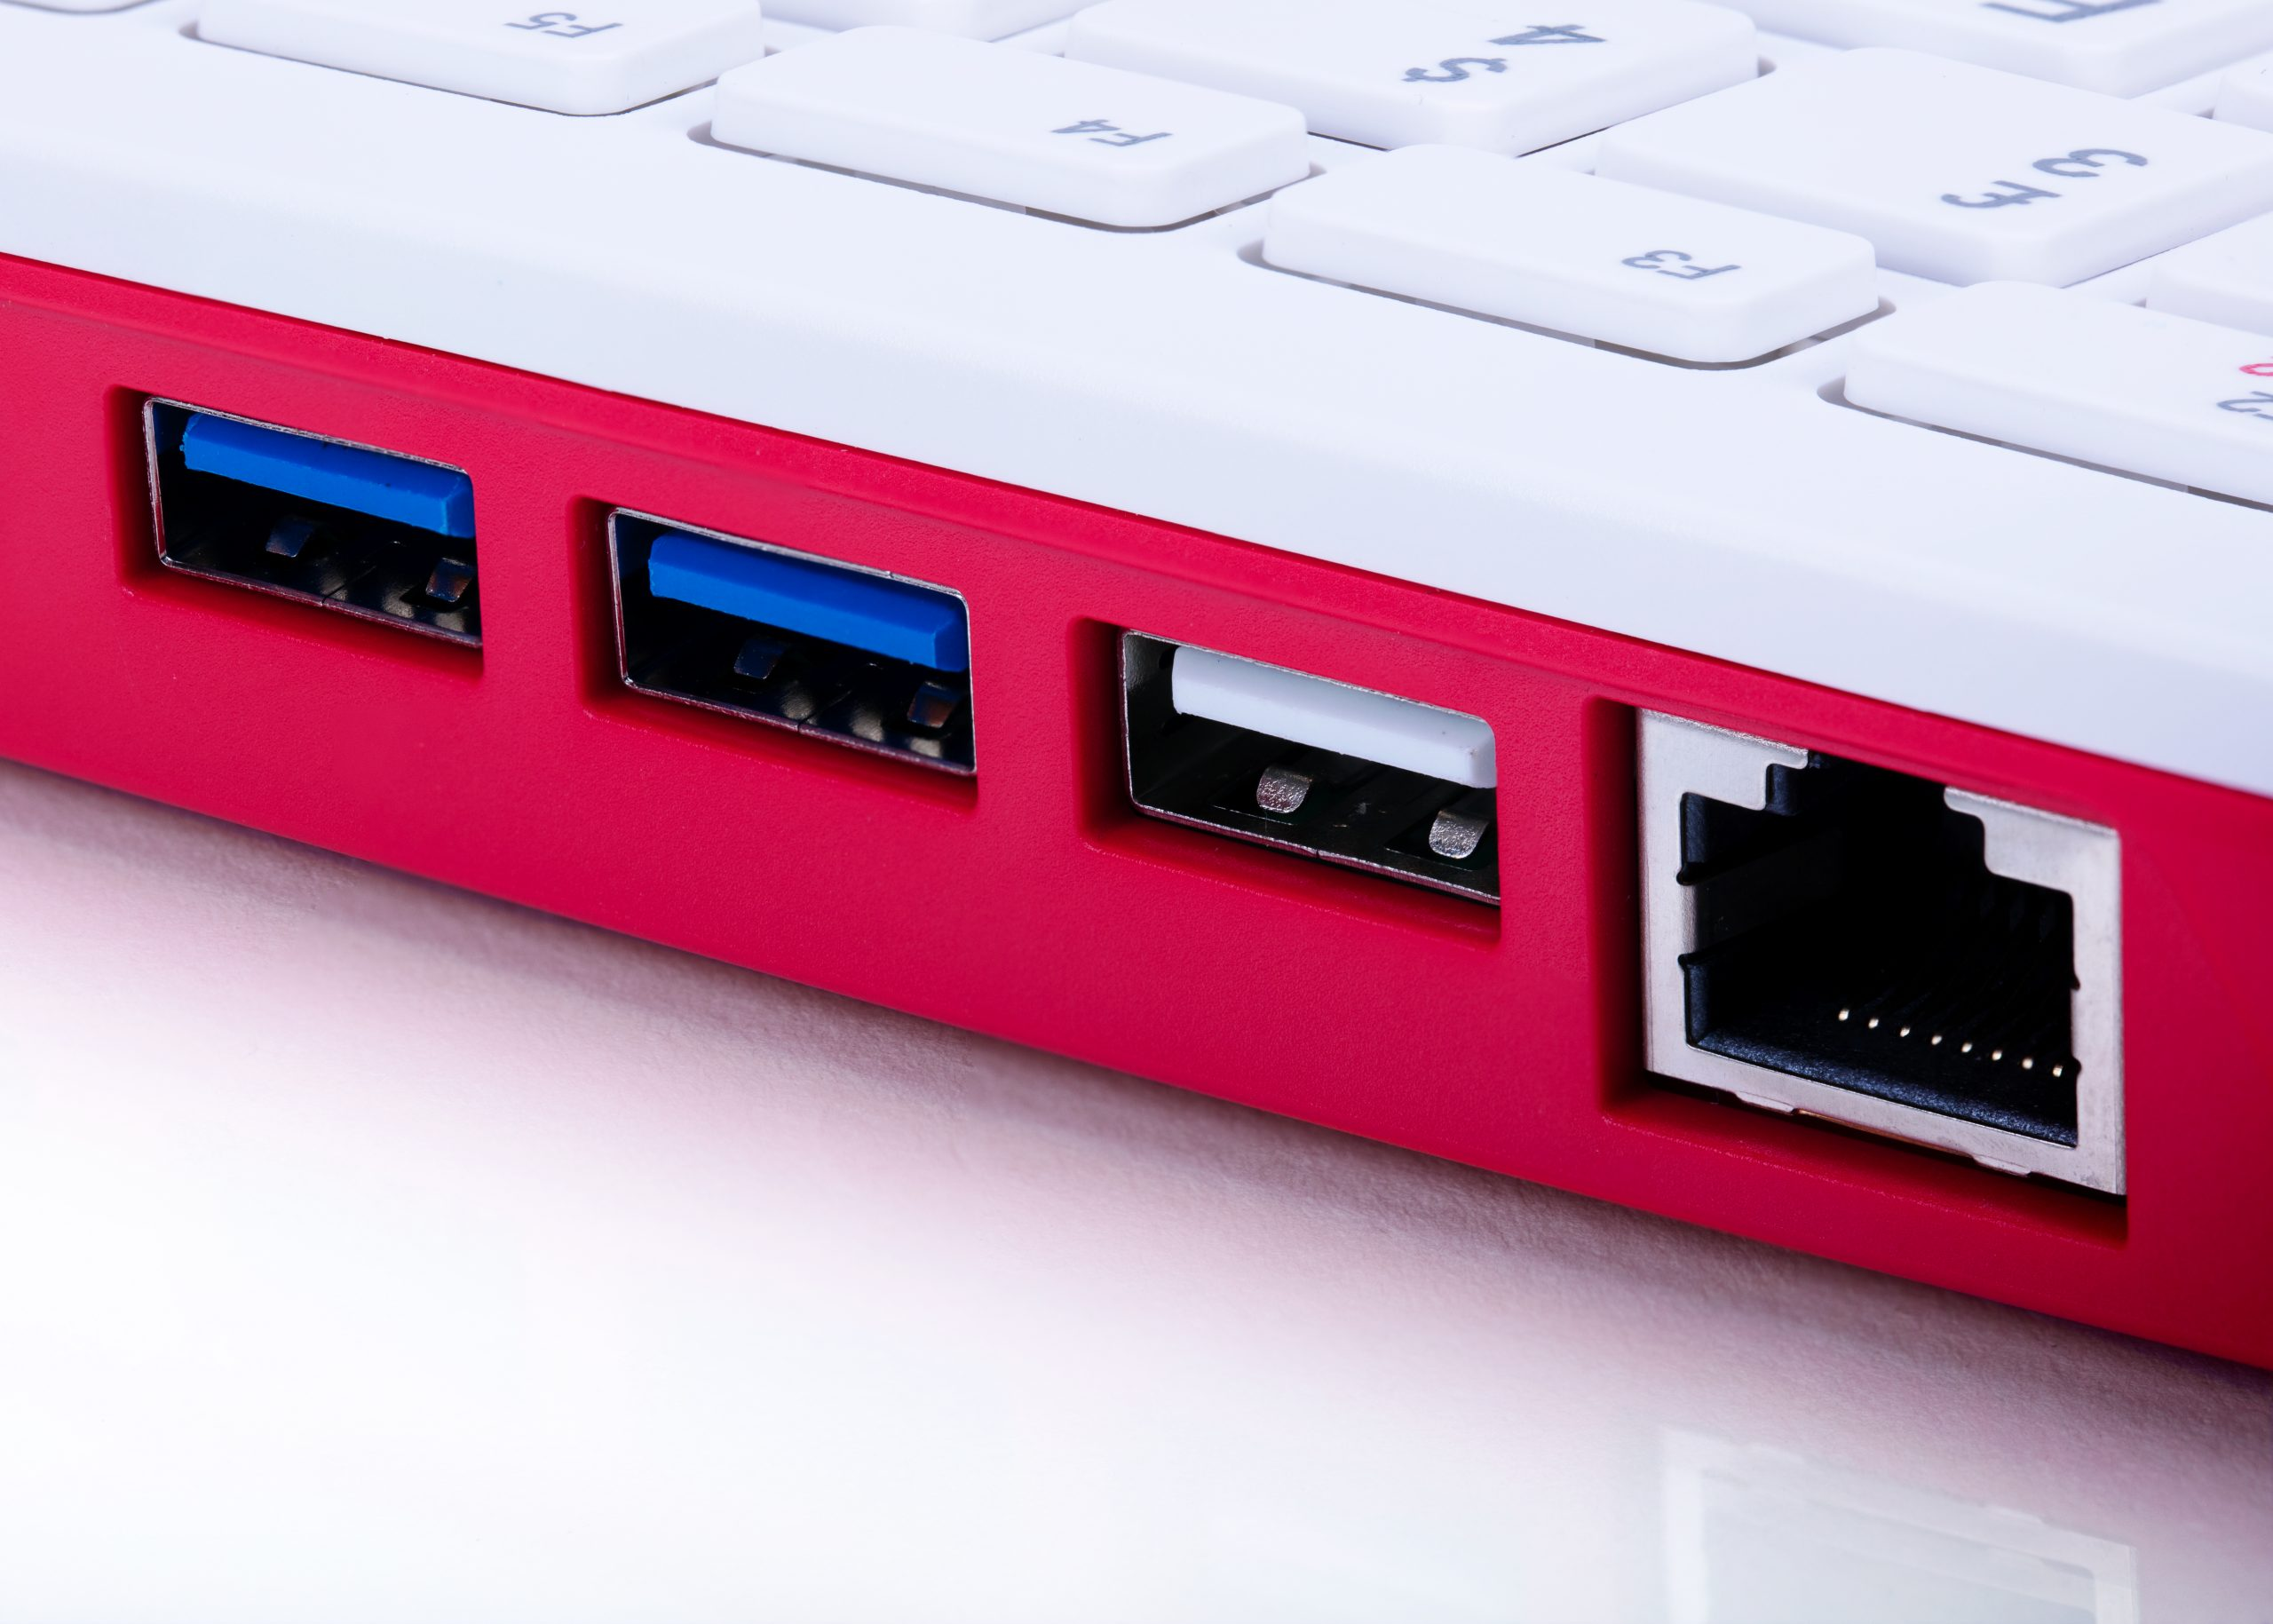 USB and HDMI port